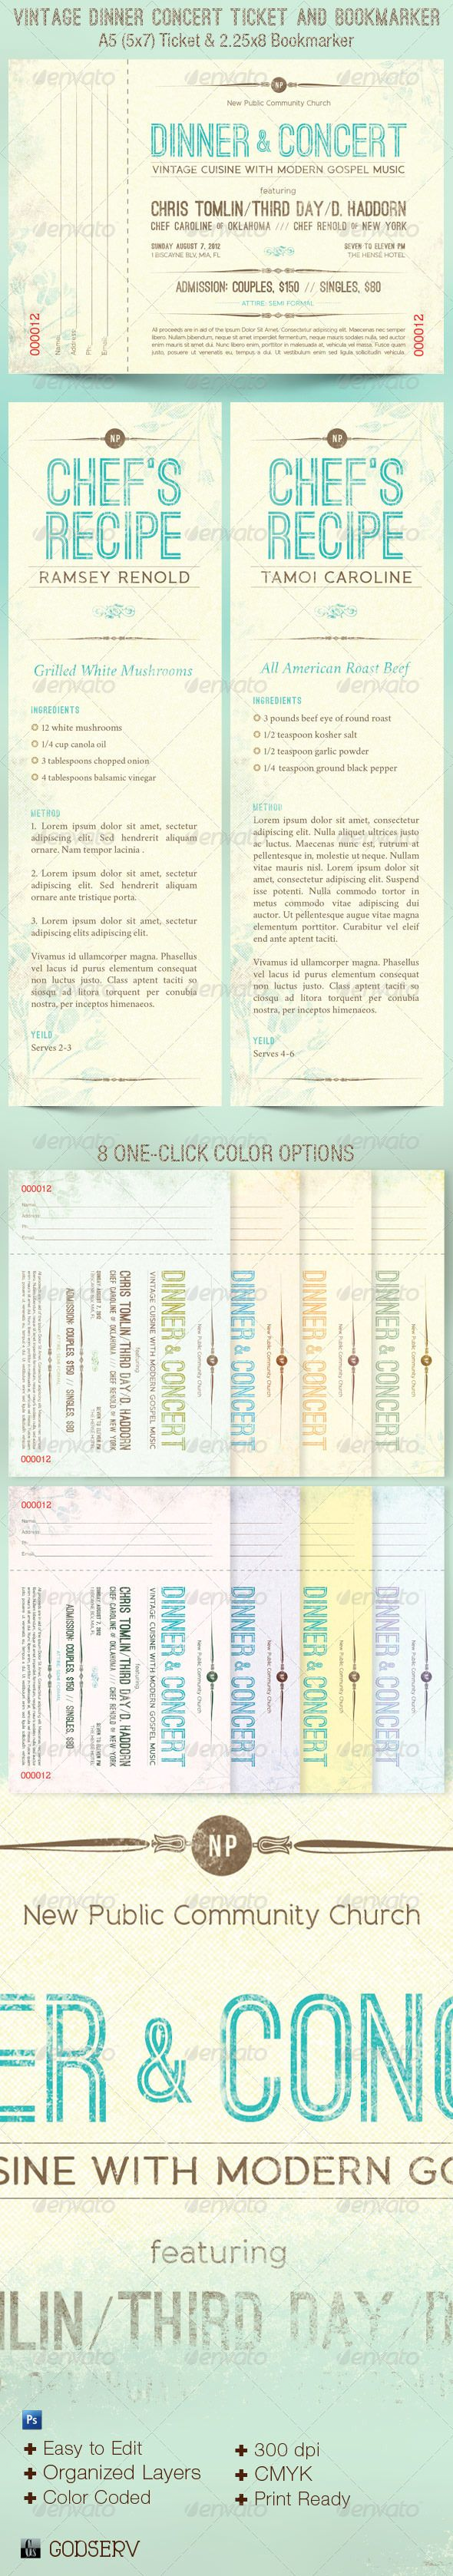 Concert Ticket Template Free Download Best Vintage Dinner Concert Ticket Bookmarker  Celebration Church .